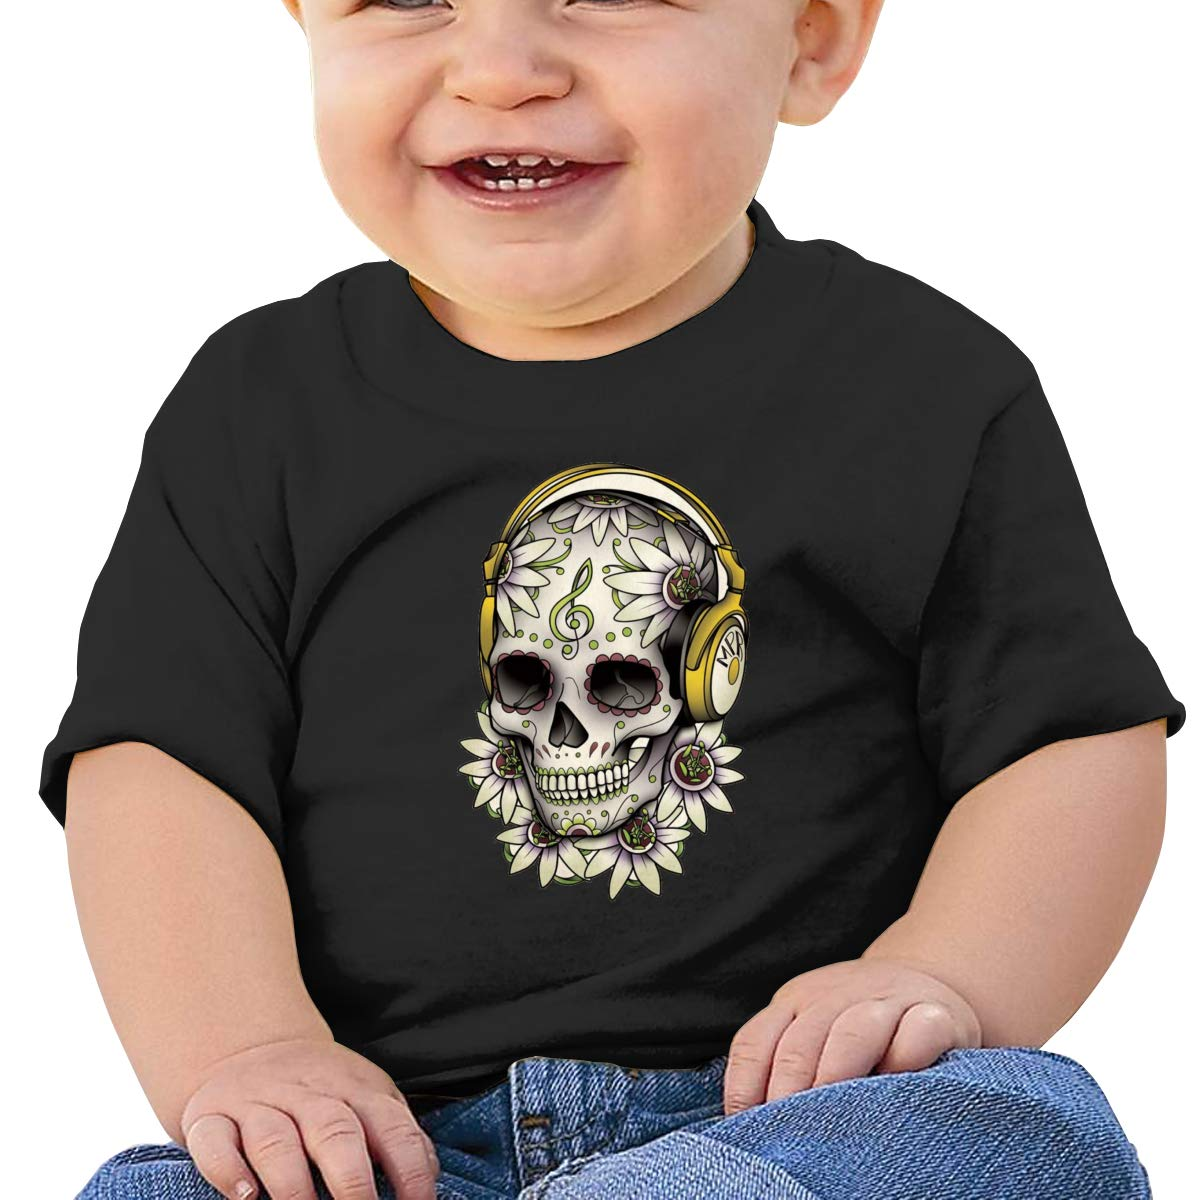 JVNSS Calavera-Tattoo-Skull-Day-of-The-Dead Baby T-Shirt Infant Boy Girl Cotton T Shirts Soft Tee Shirts for 6M-2T Baby